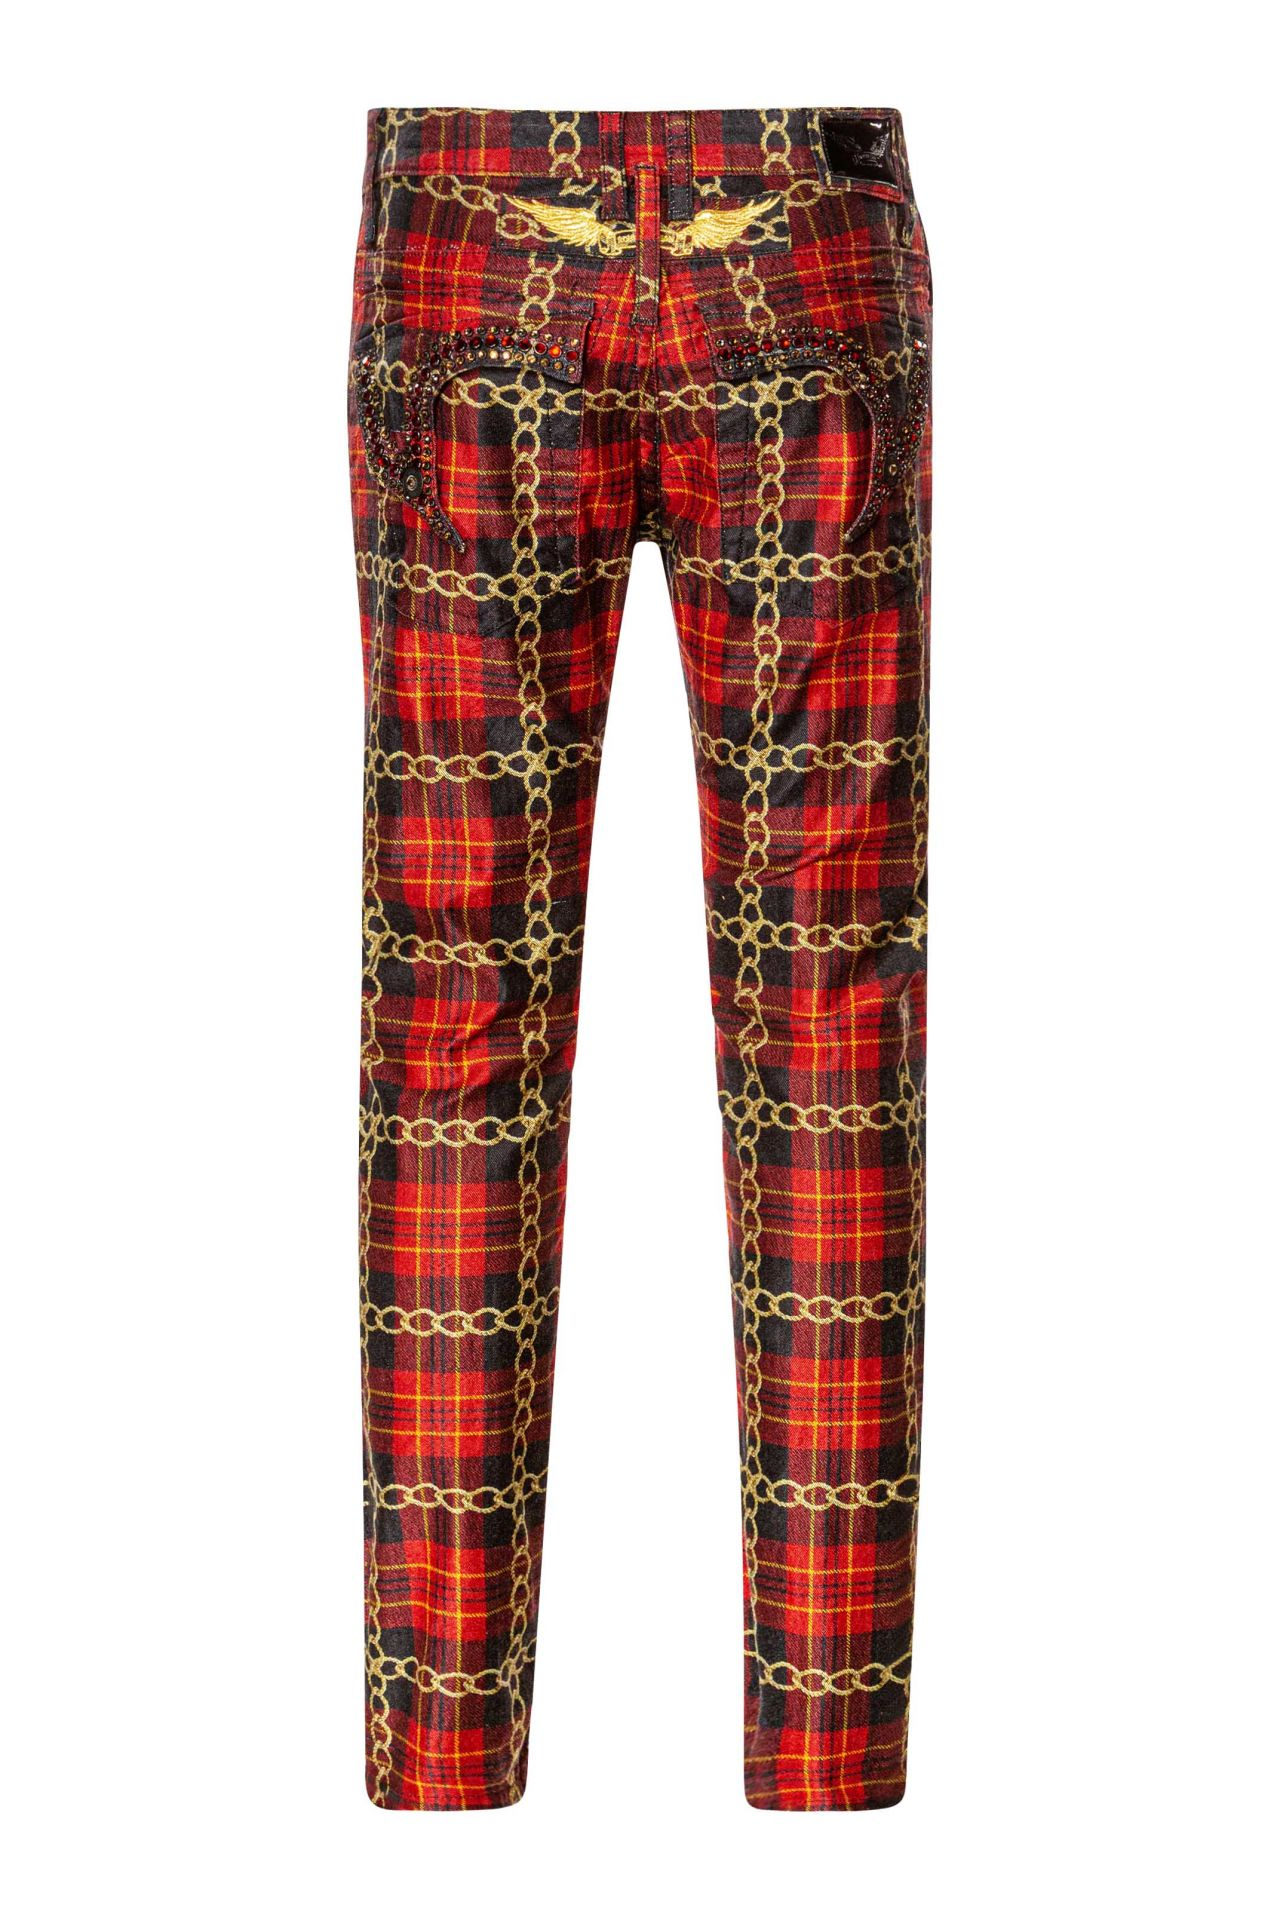 KILLER FLAP WITH CRYSTALS IN RED PLAID